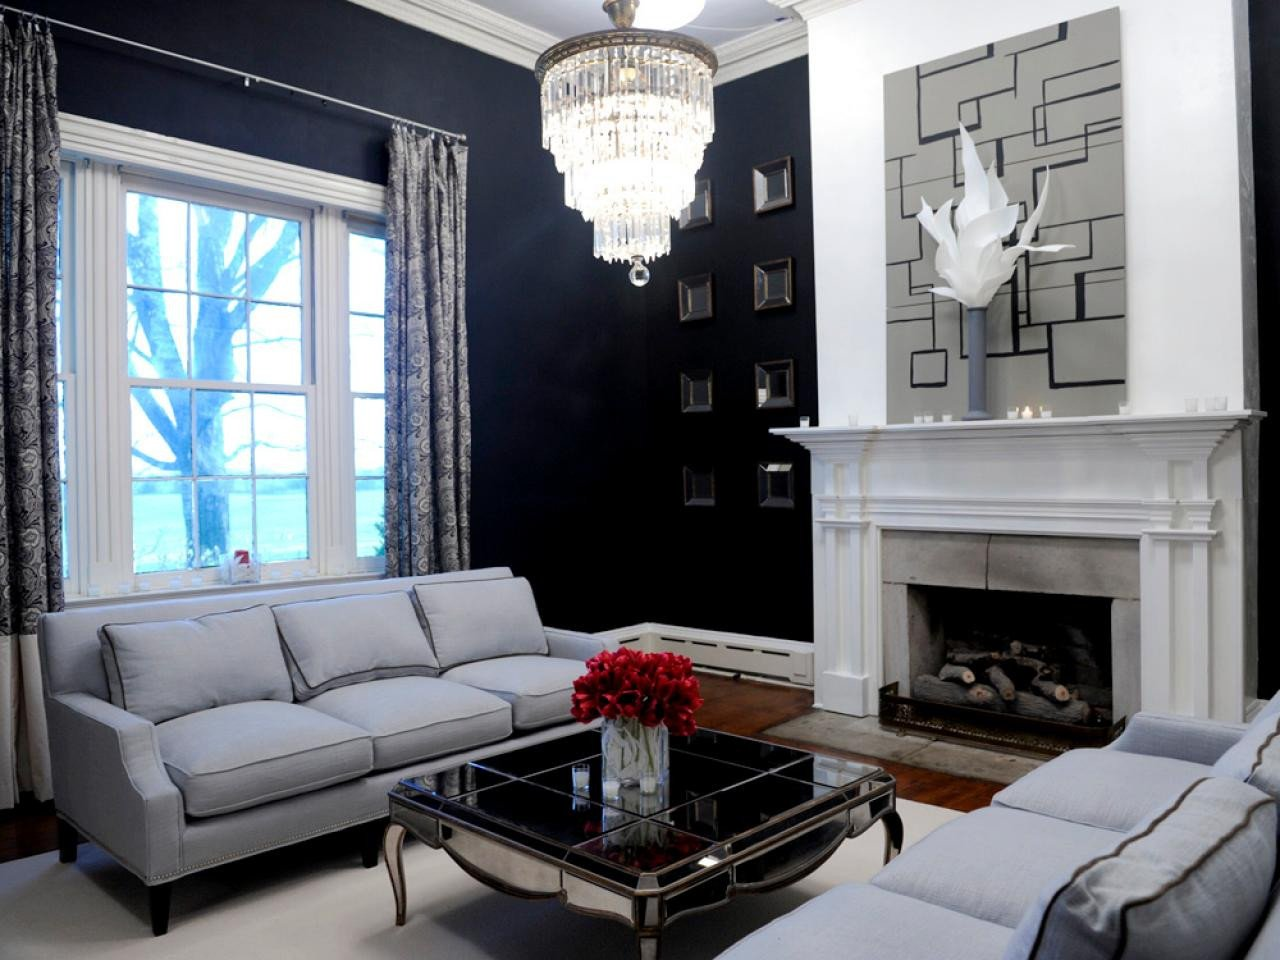 Modern Grey Living Room Decorating Ideas Awesome Modern Style for Classic Rooms Hgtv Design Star